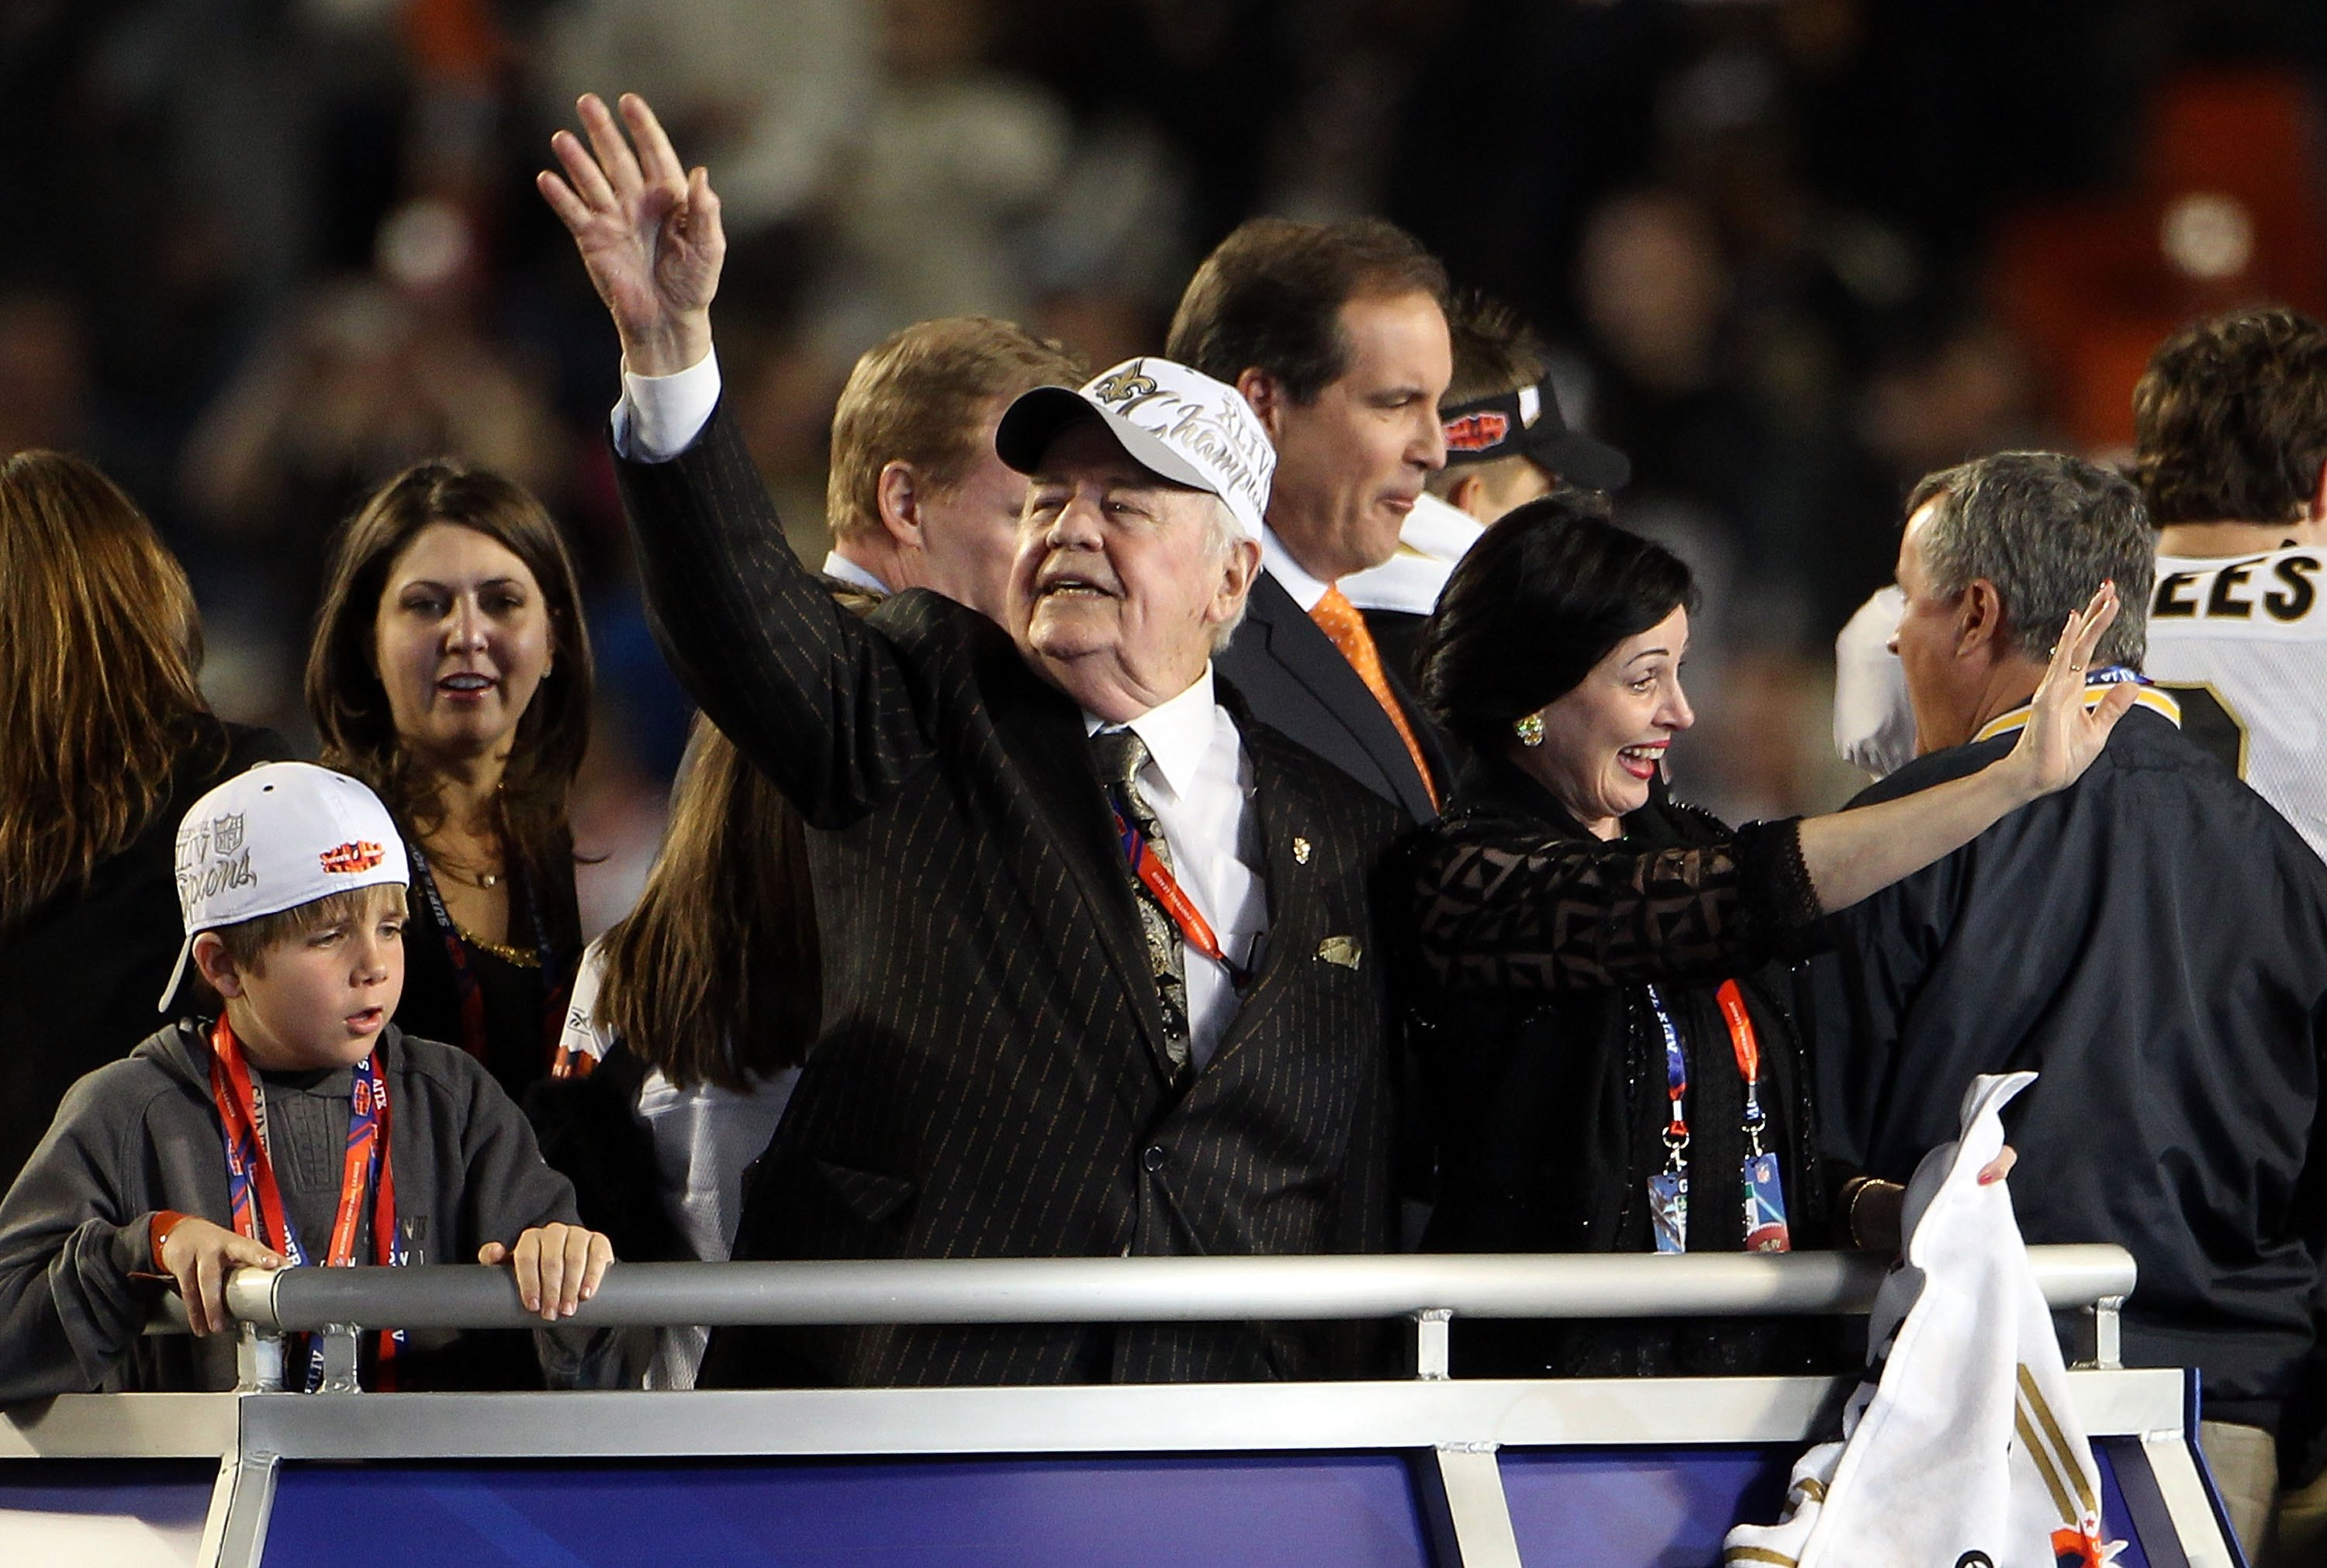 MIAMI GARDENS, FL - FEBRUARY 07:  New Orleans Saints owner Tom Benson celebrates after his team defeated the Indianapolis Colts during Super Bowl XLIV on February 7, 2010 at Sun Life Stadium in Miami Gardens, Florida.  (Photo by Elsa/Getty Images)